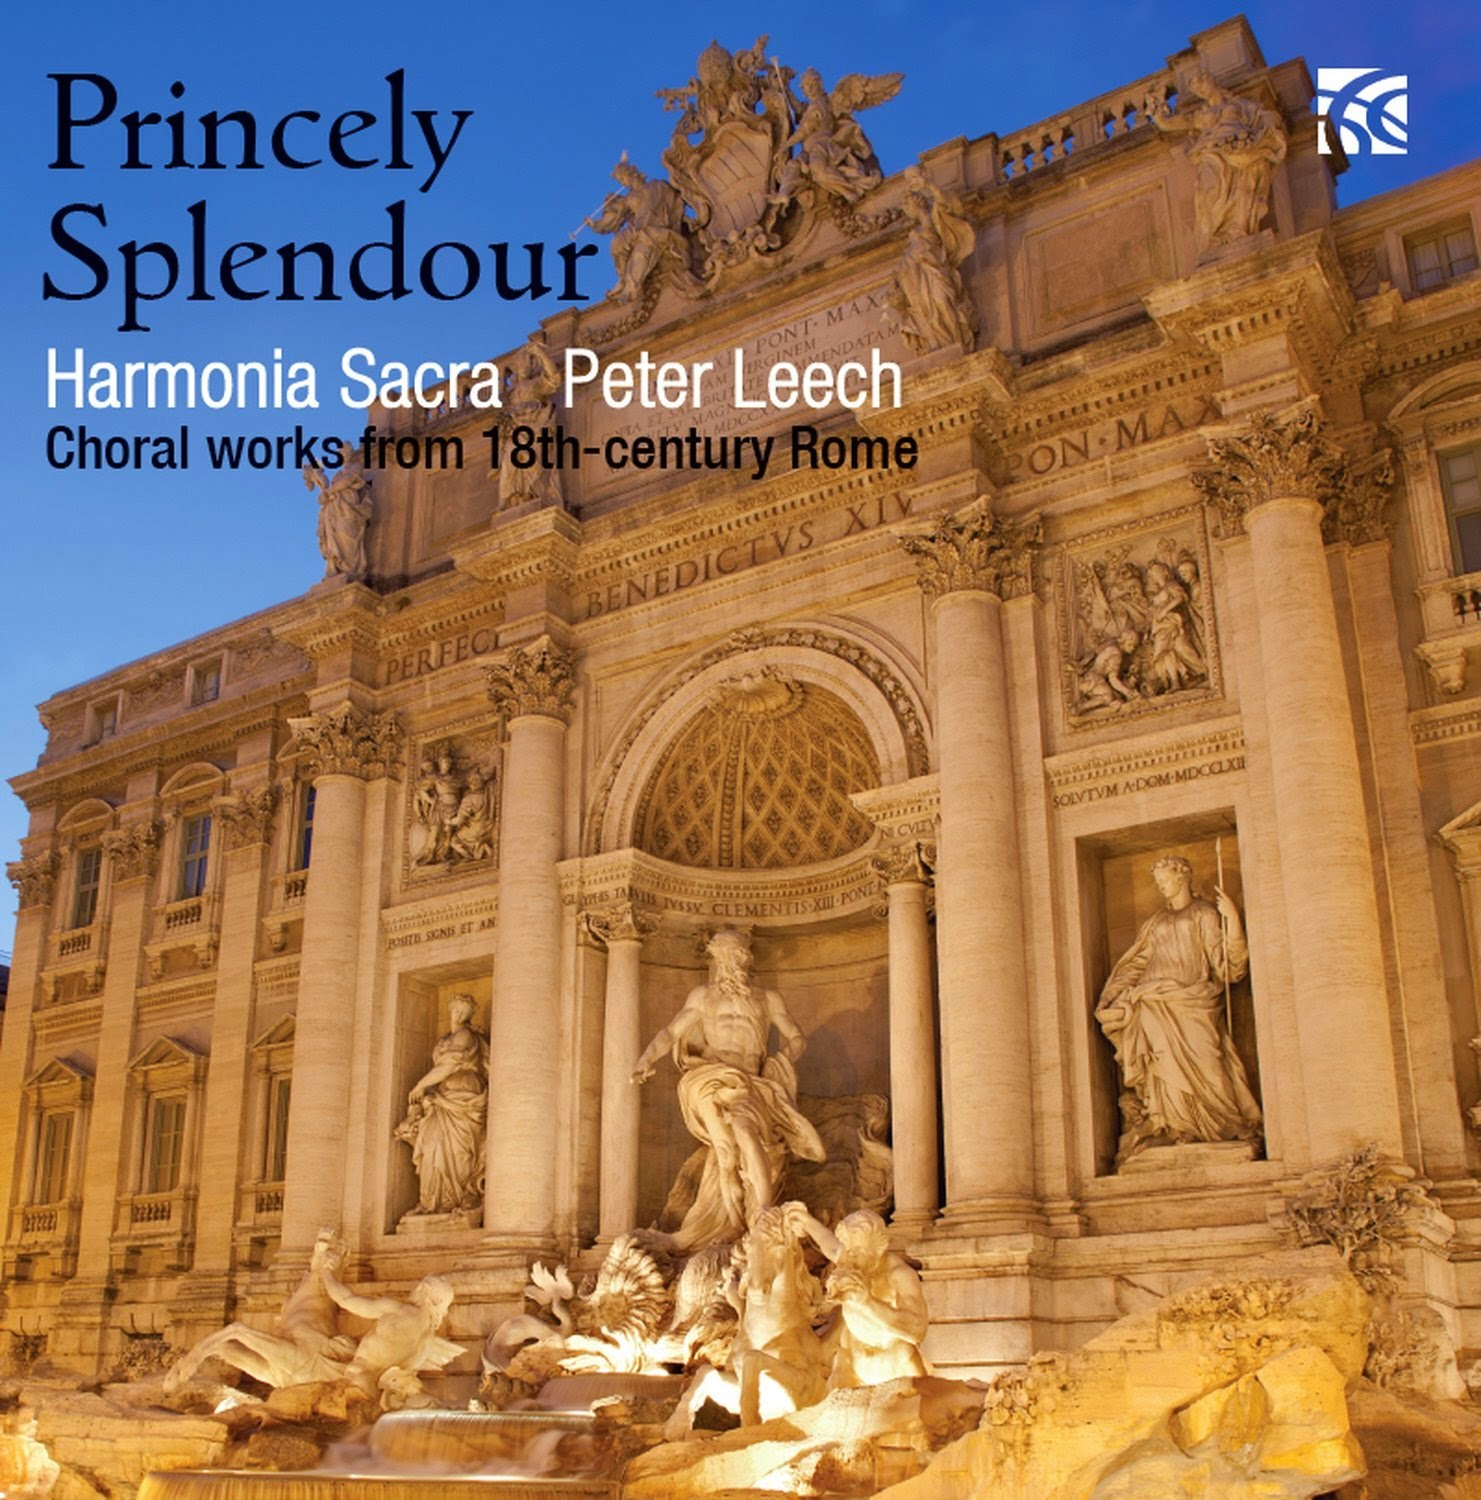 Planet Hugill: Princely Splendour - Sacred music from 18th century Rome